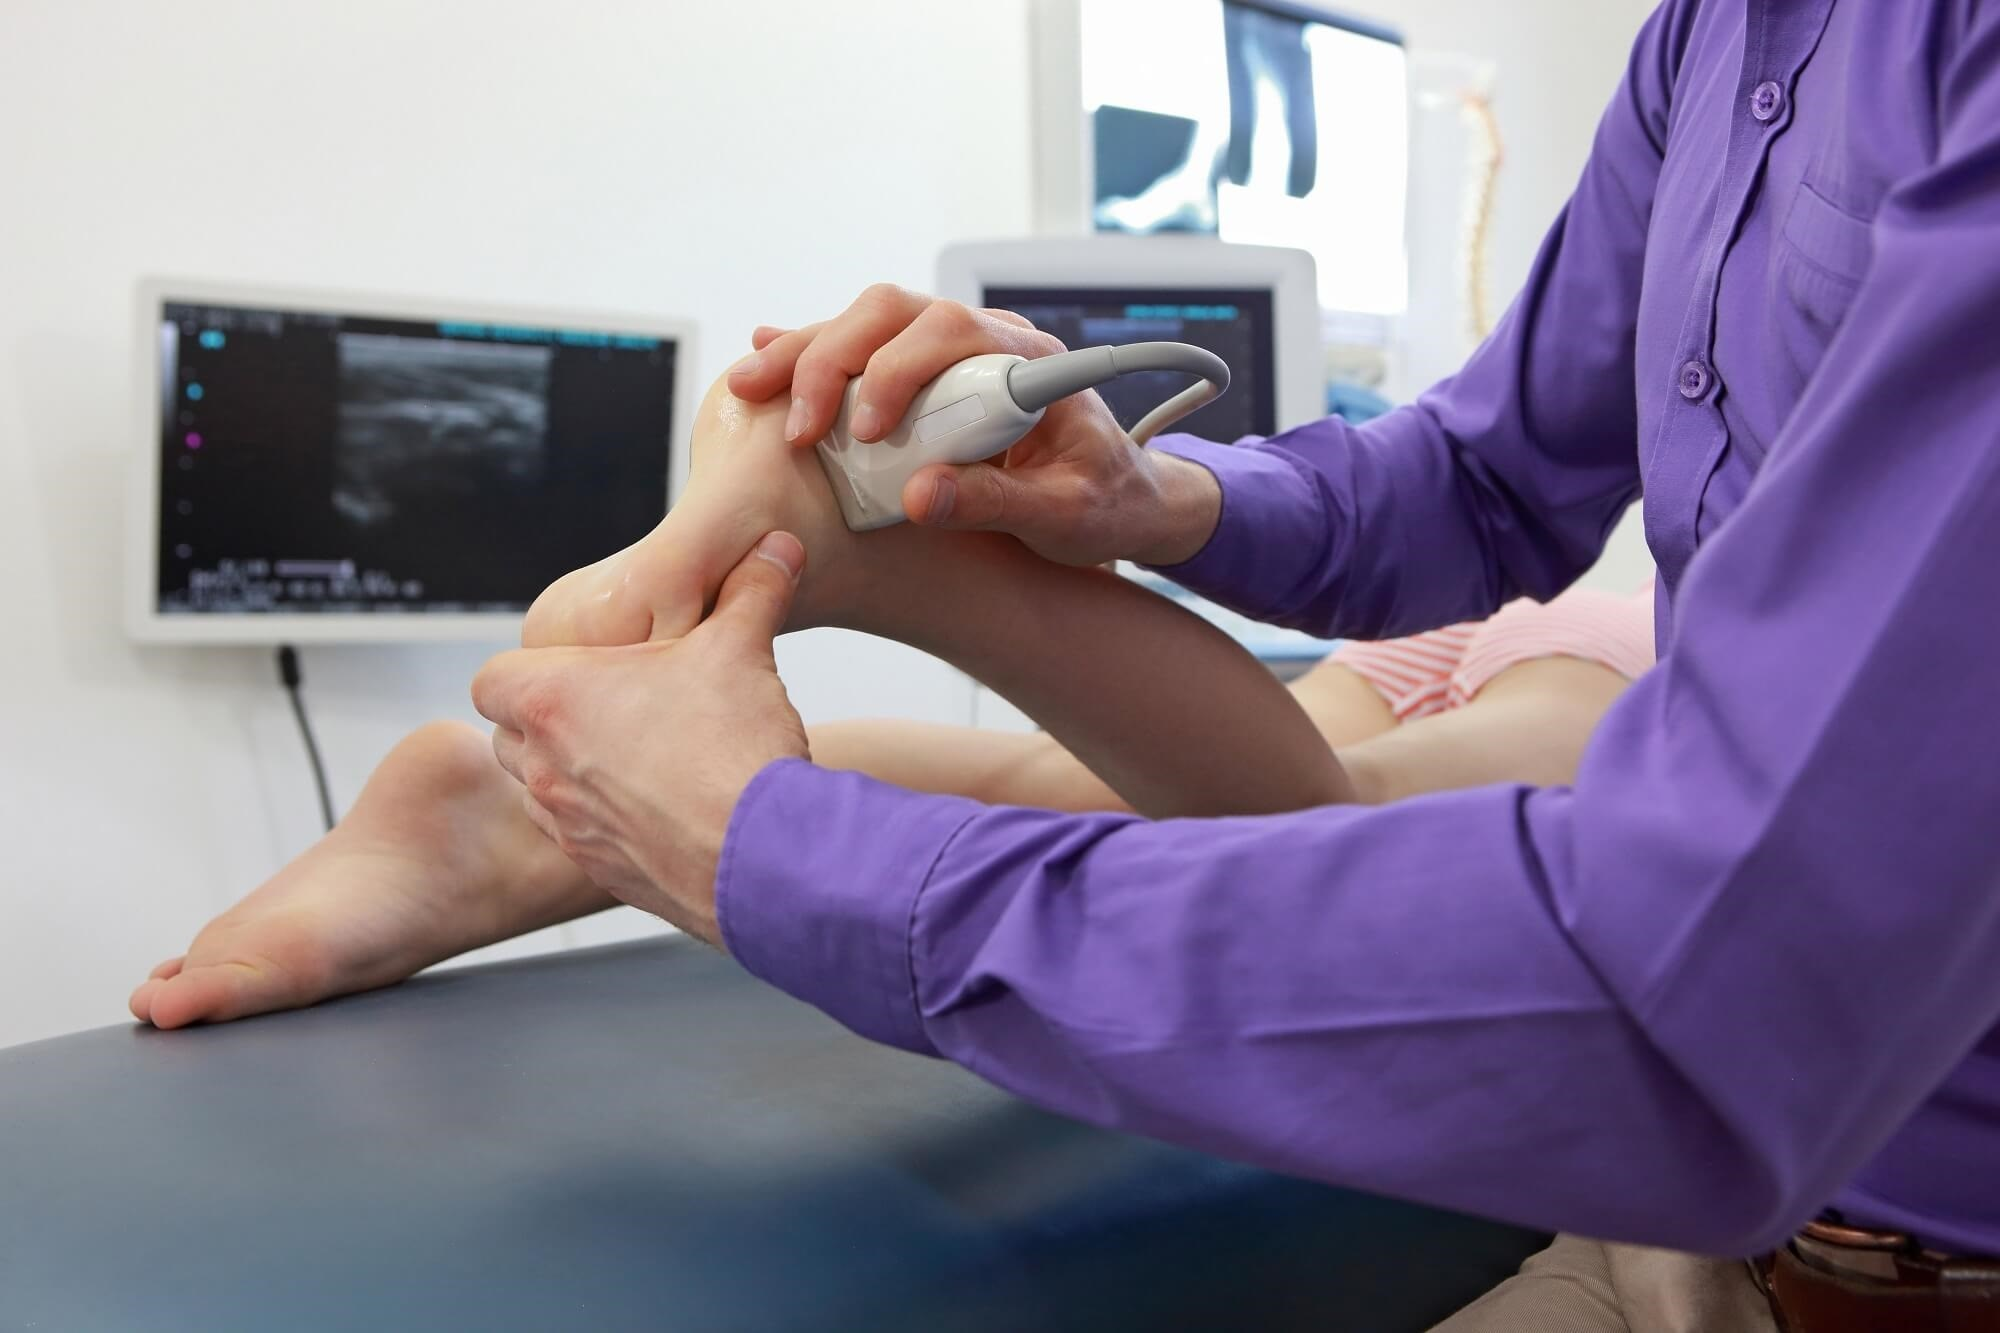 Ultrasound May Be Reliable for Assessing Subtalar Joint Synovitis in Rheumatoid Arthritis